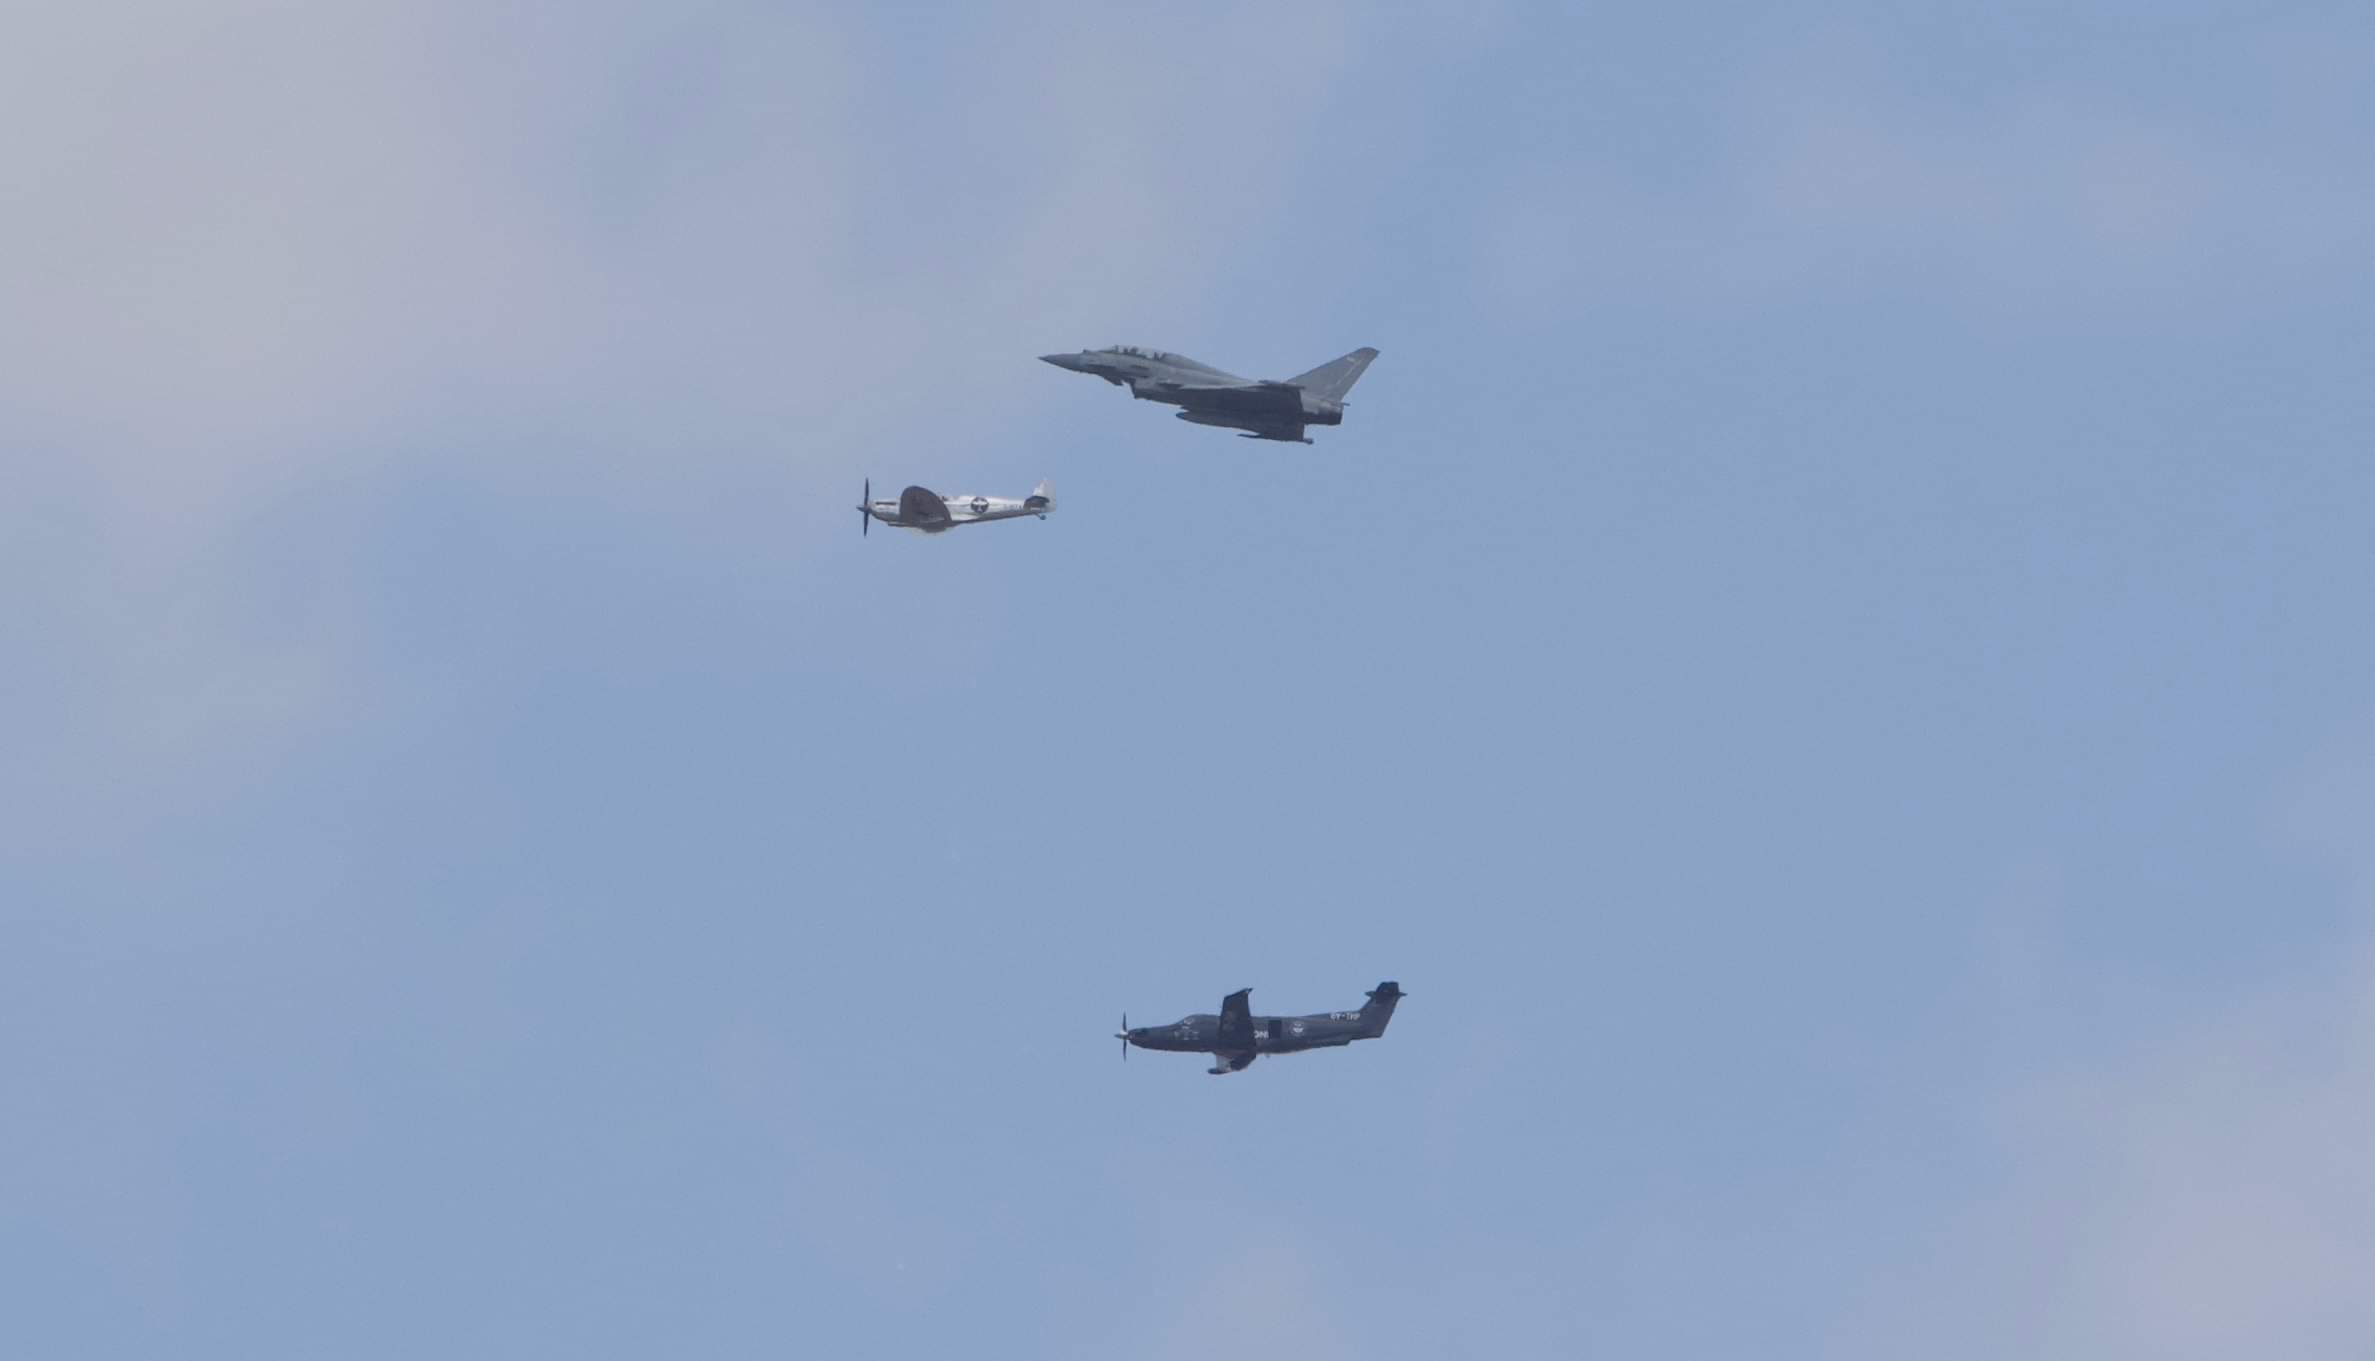 typhoon and silver spitfire over coningsby at the start of the longest flight